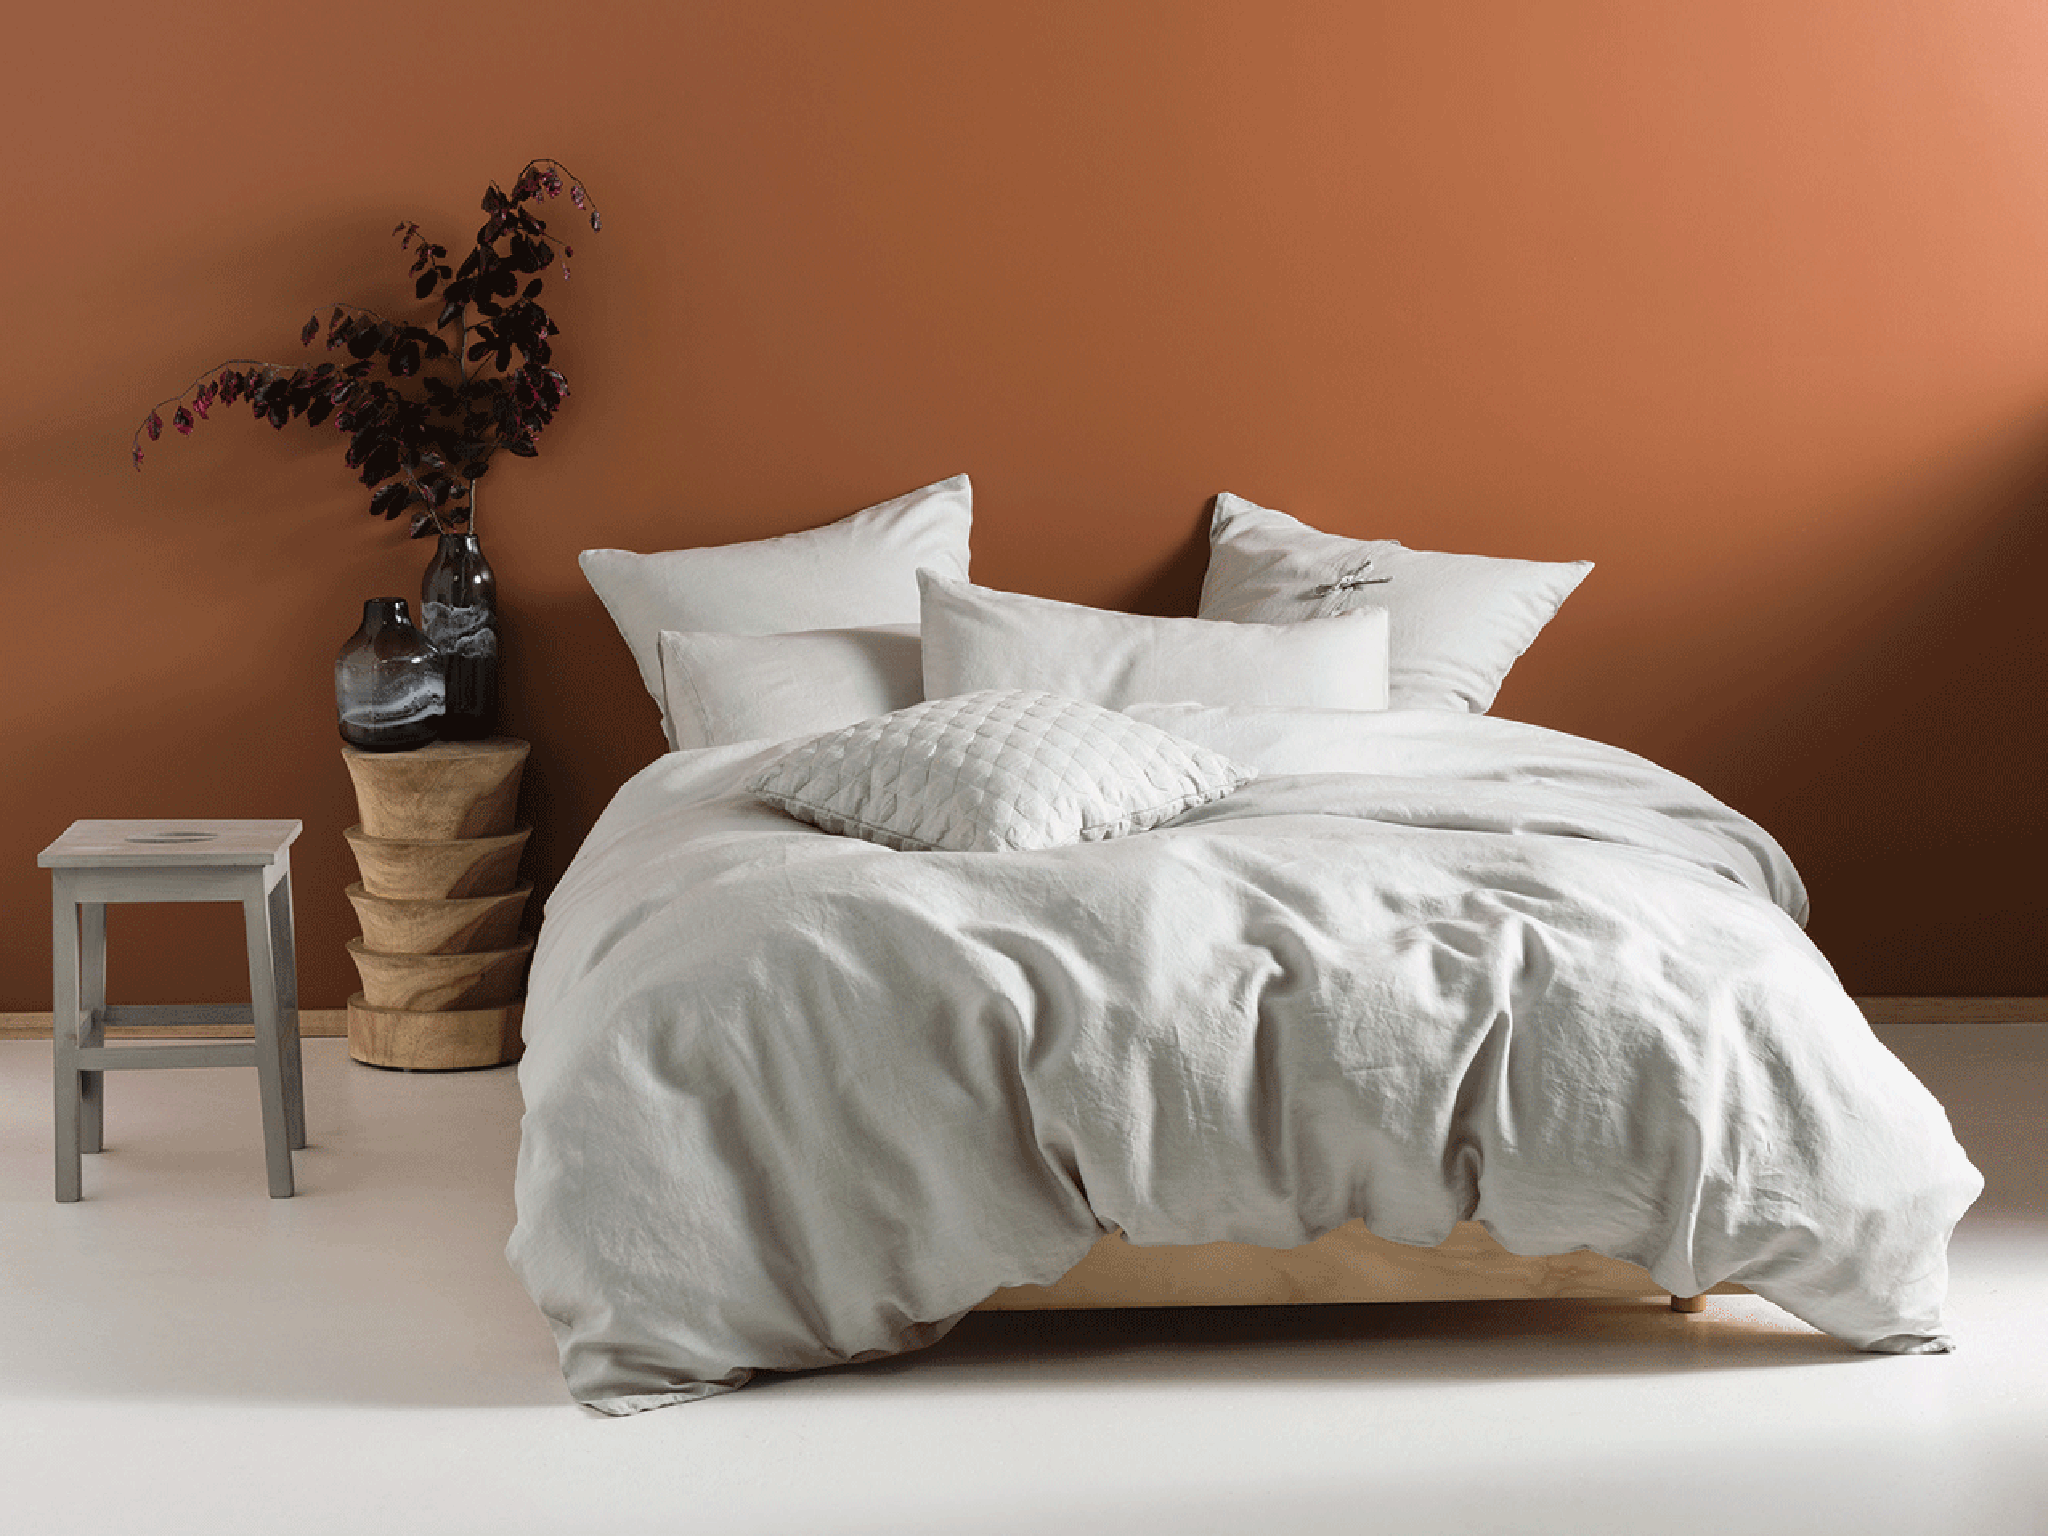 Is Linen Or Cotton Better For Bedding?